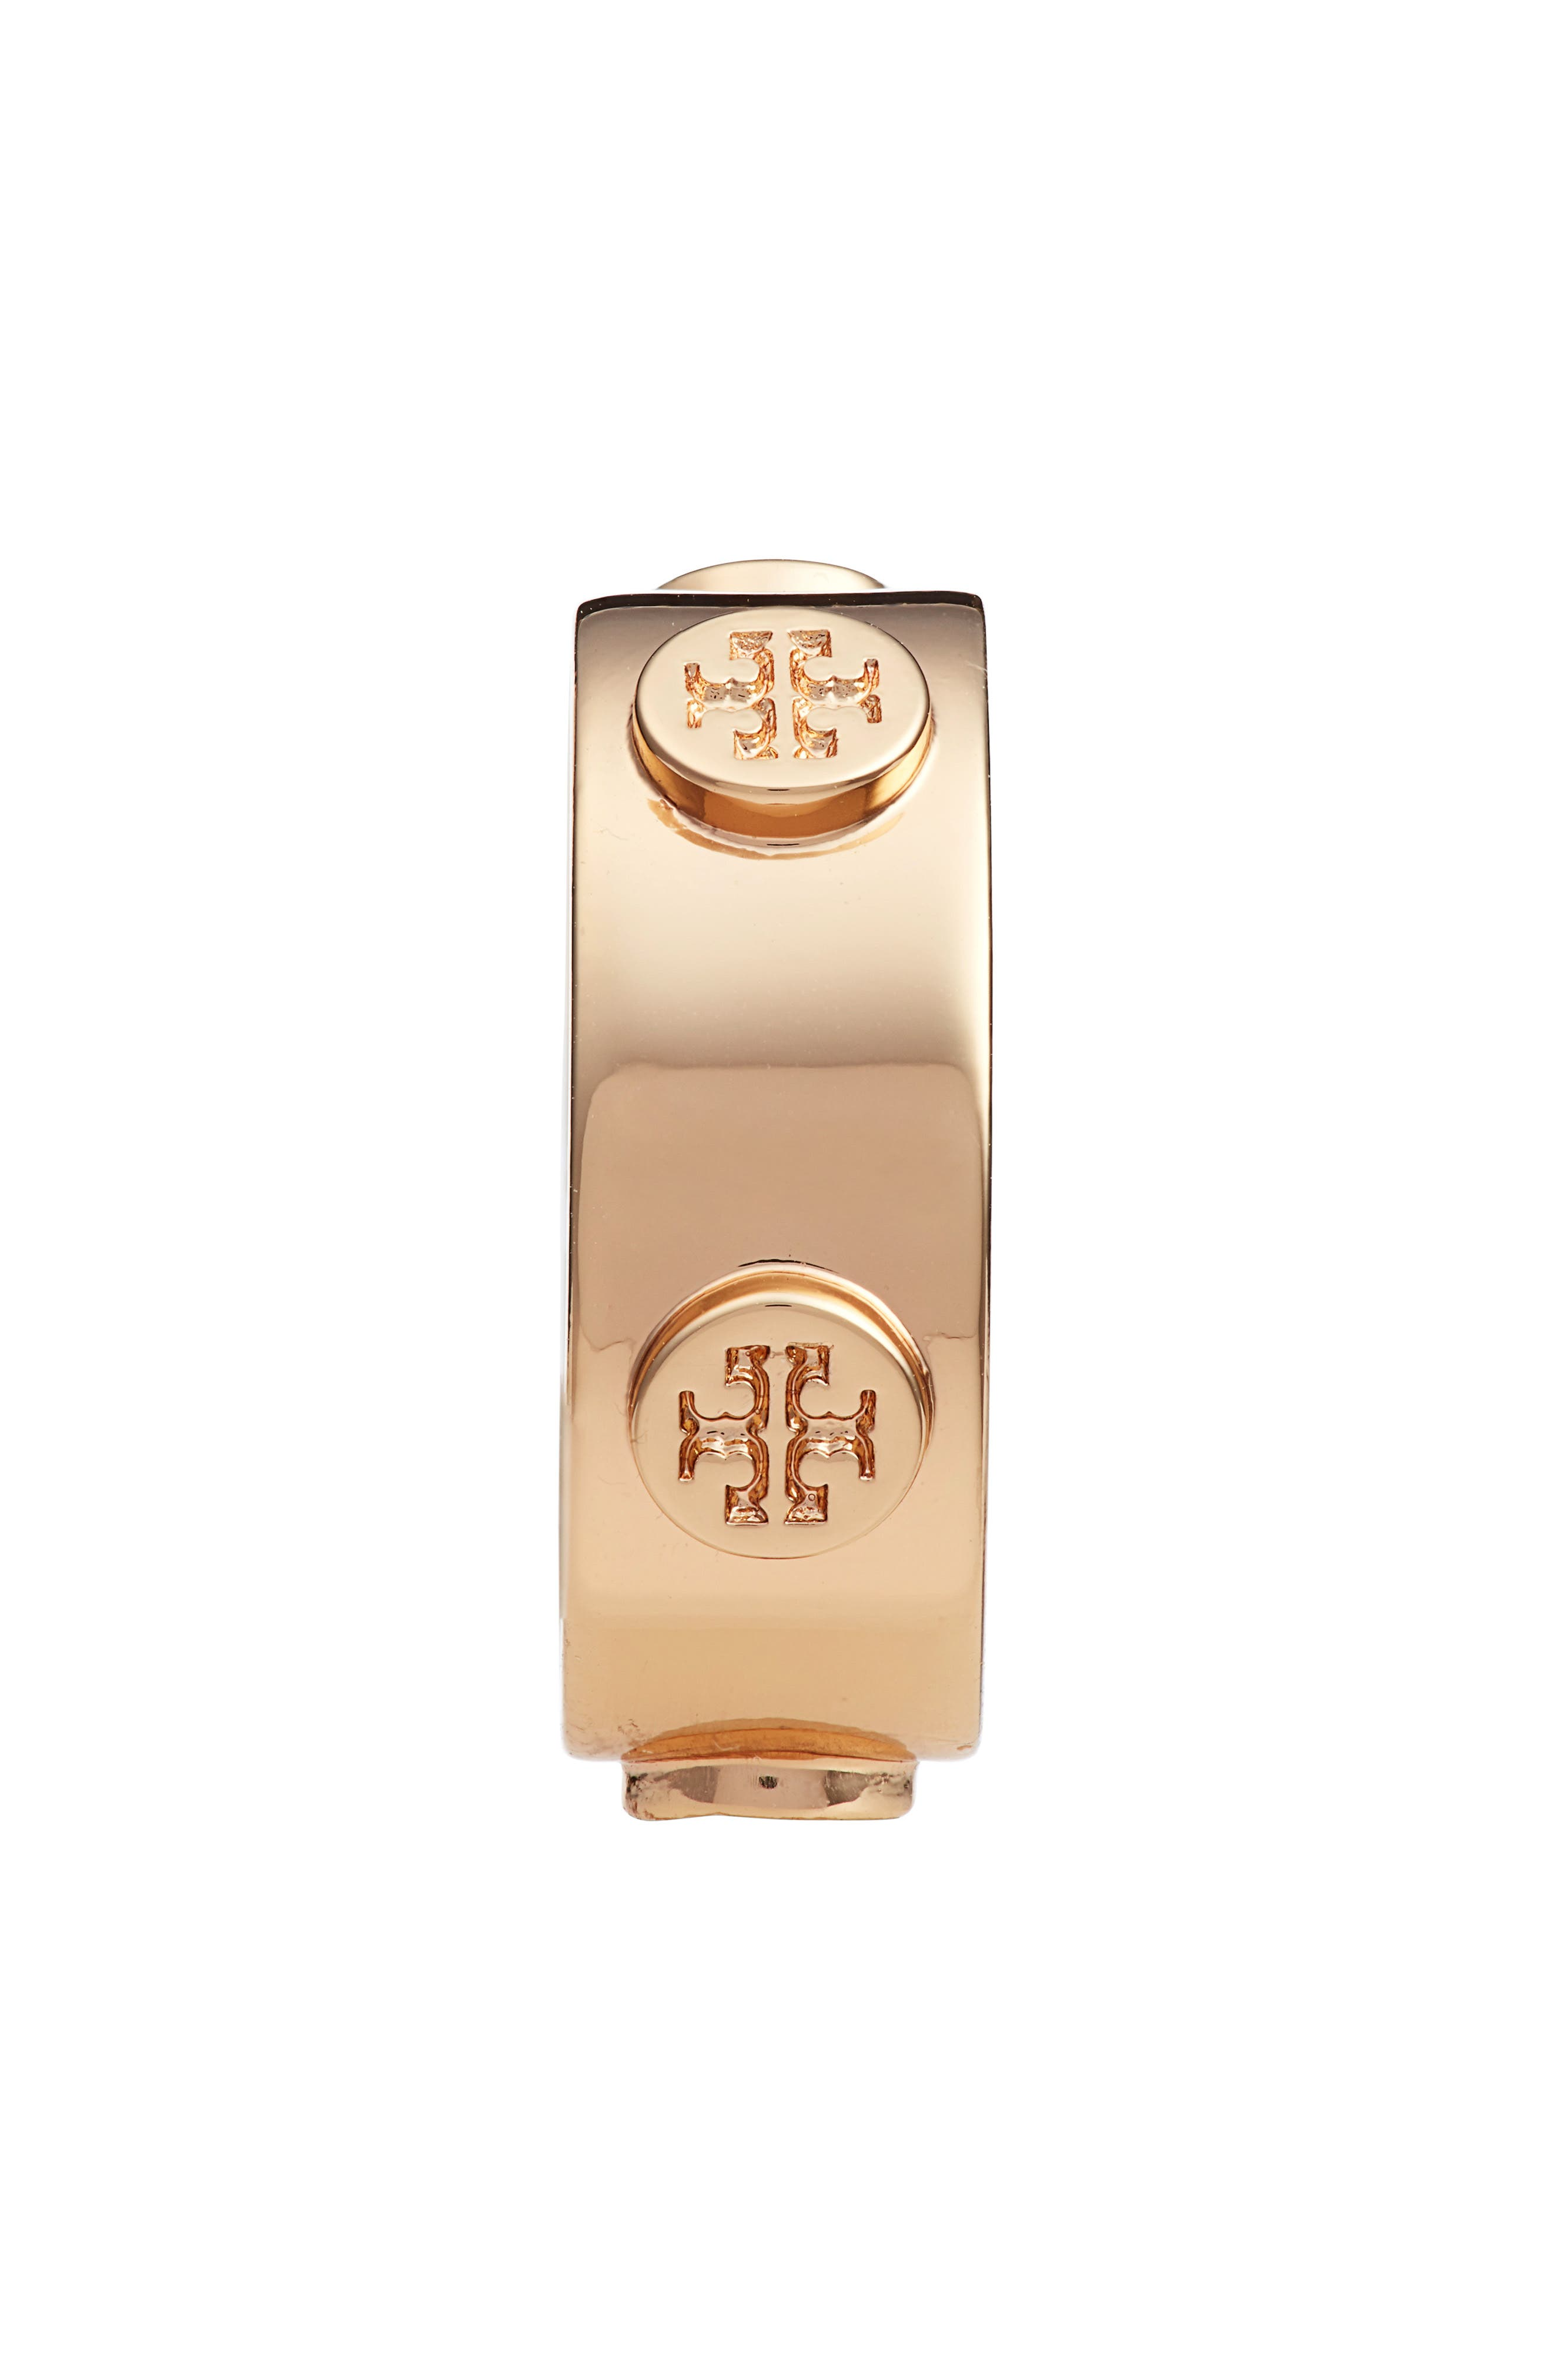 TORY BURCH, Delicate Logo Ring, Alternate thumbnail 2, color, TORY GOLD